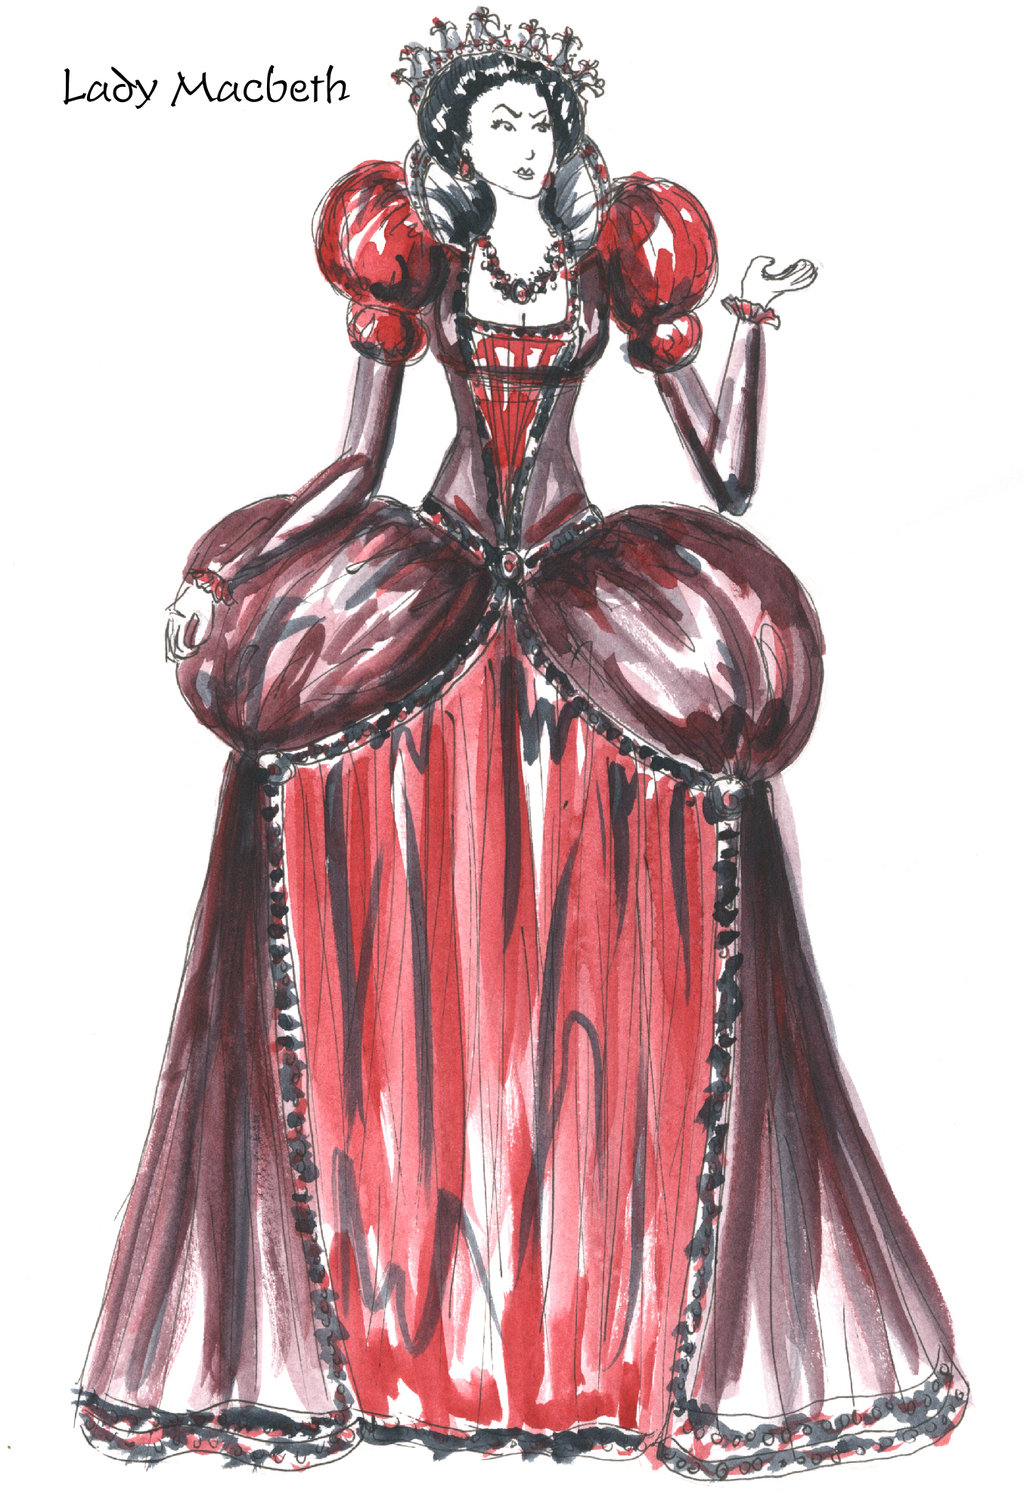 1024x1497 Lady Macbeth's First Costume. She Wears Lighter Colors In